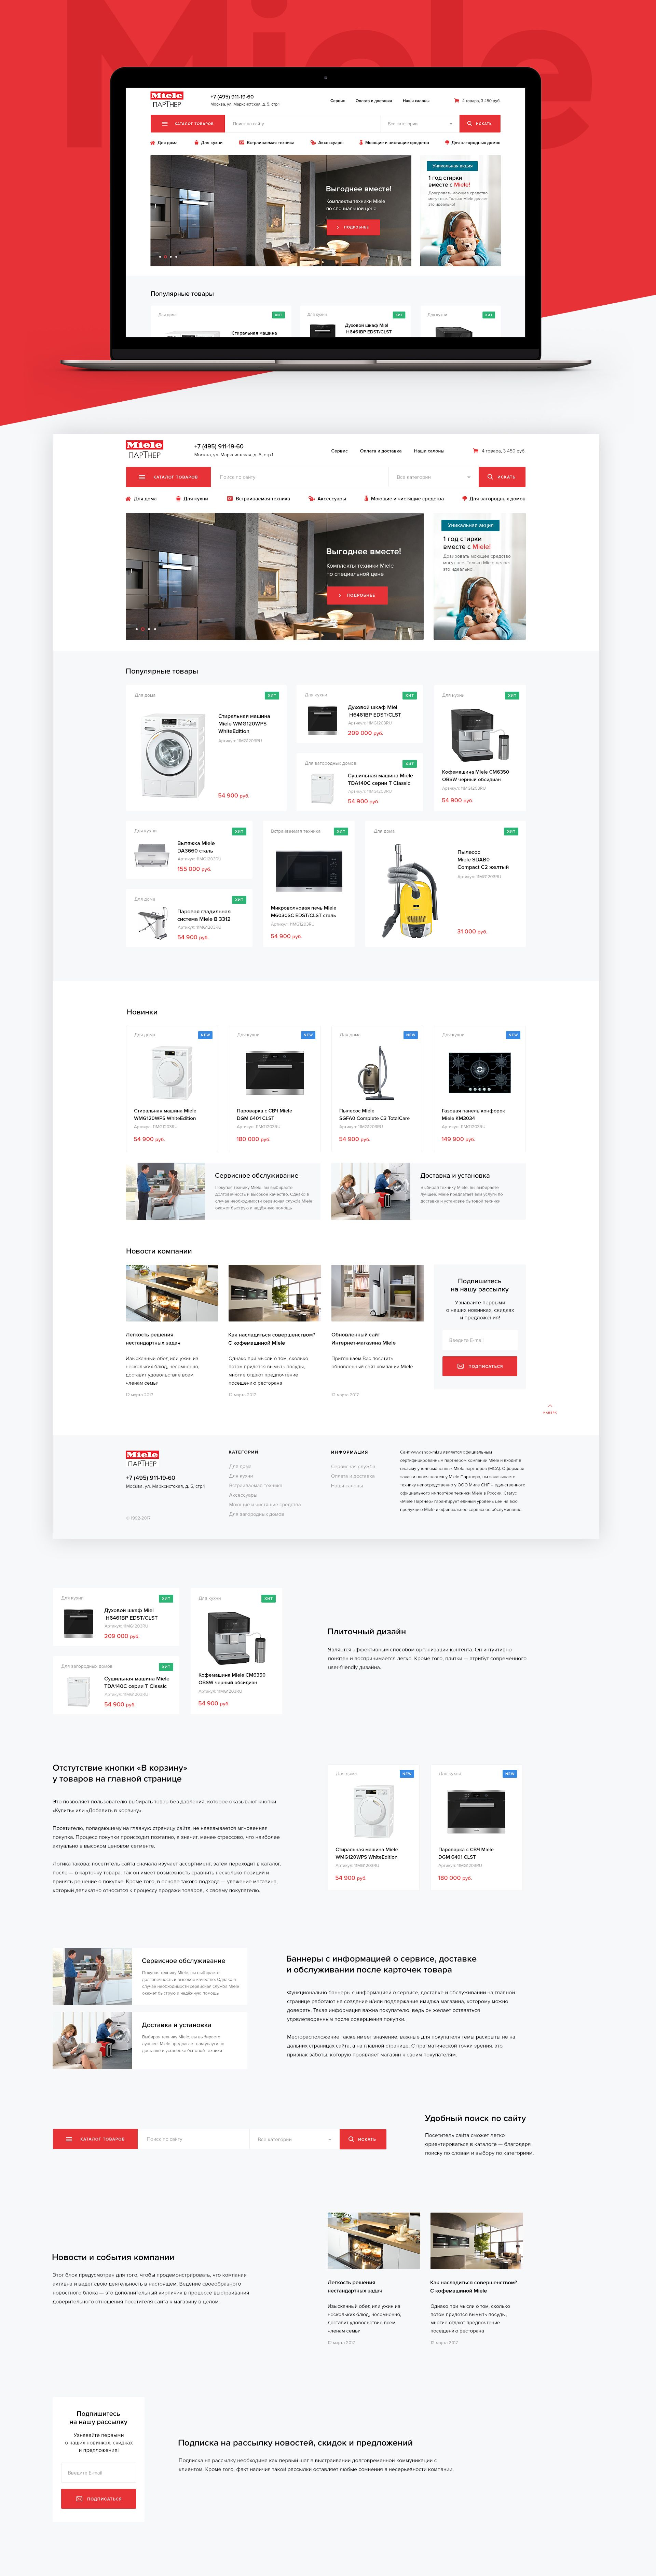 Check Out My Behance Project Online Store For Miele Partner Https Www Behance Net Gallery 51981245 Online S Design Online Store Online Shop Design Design